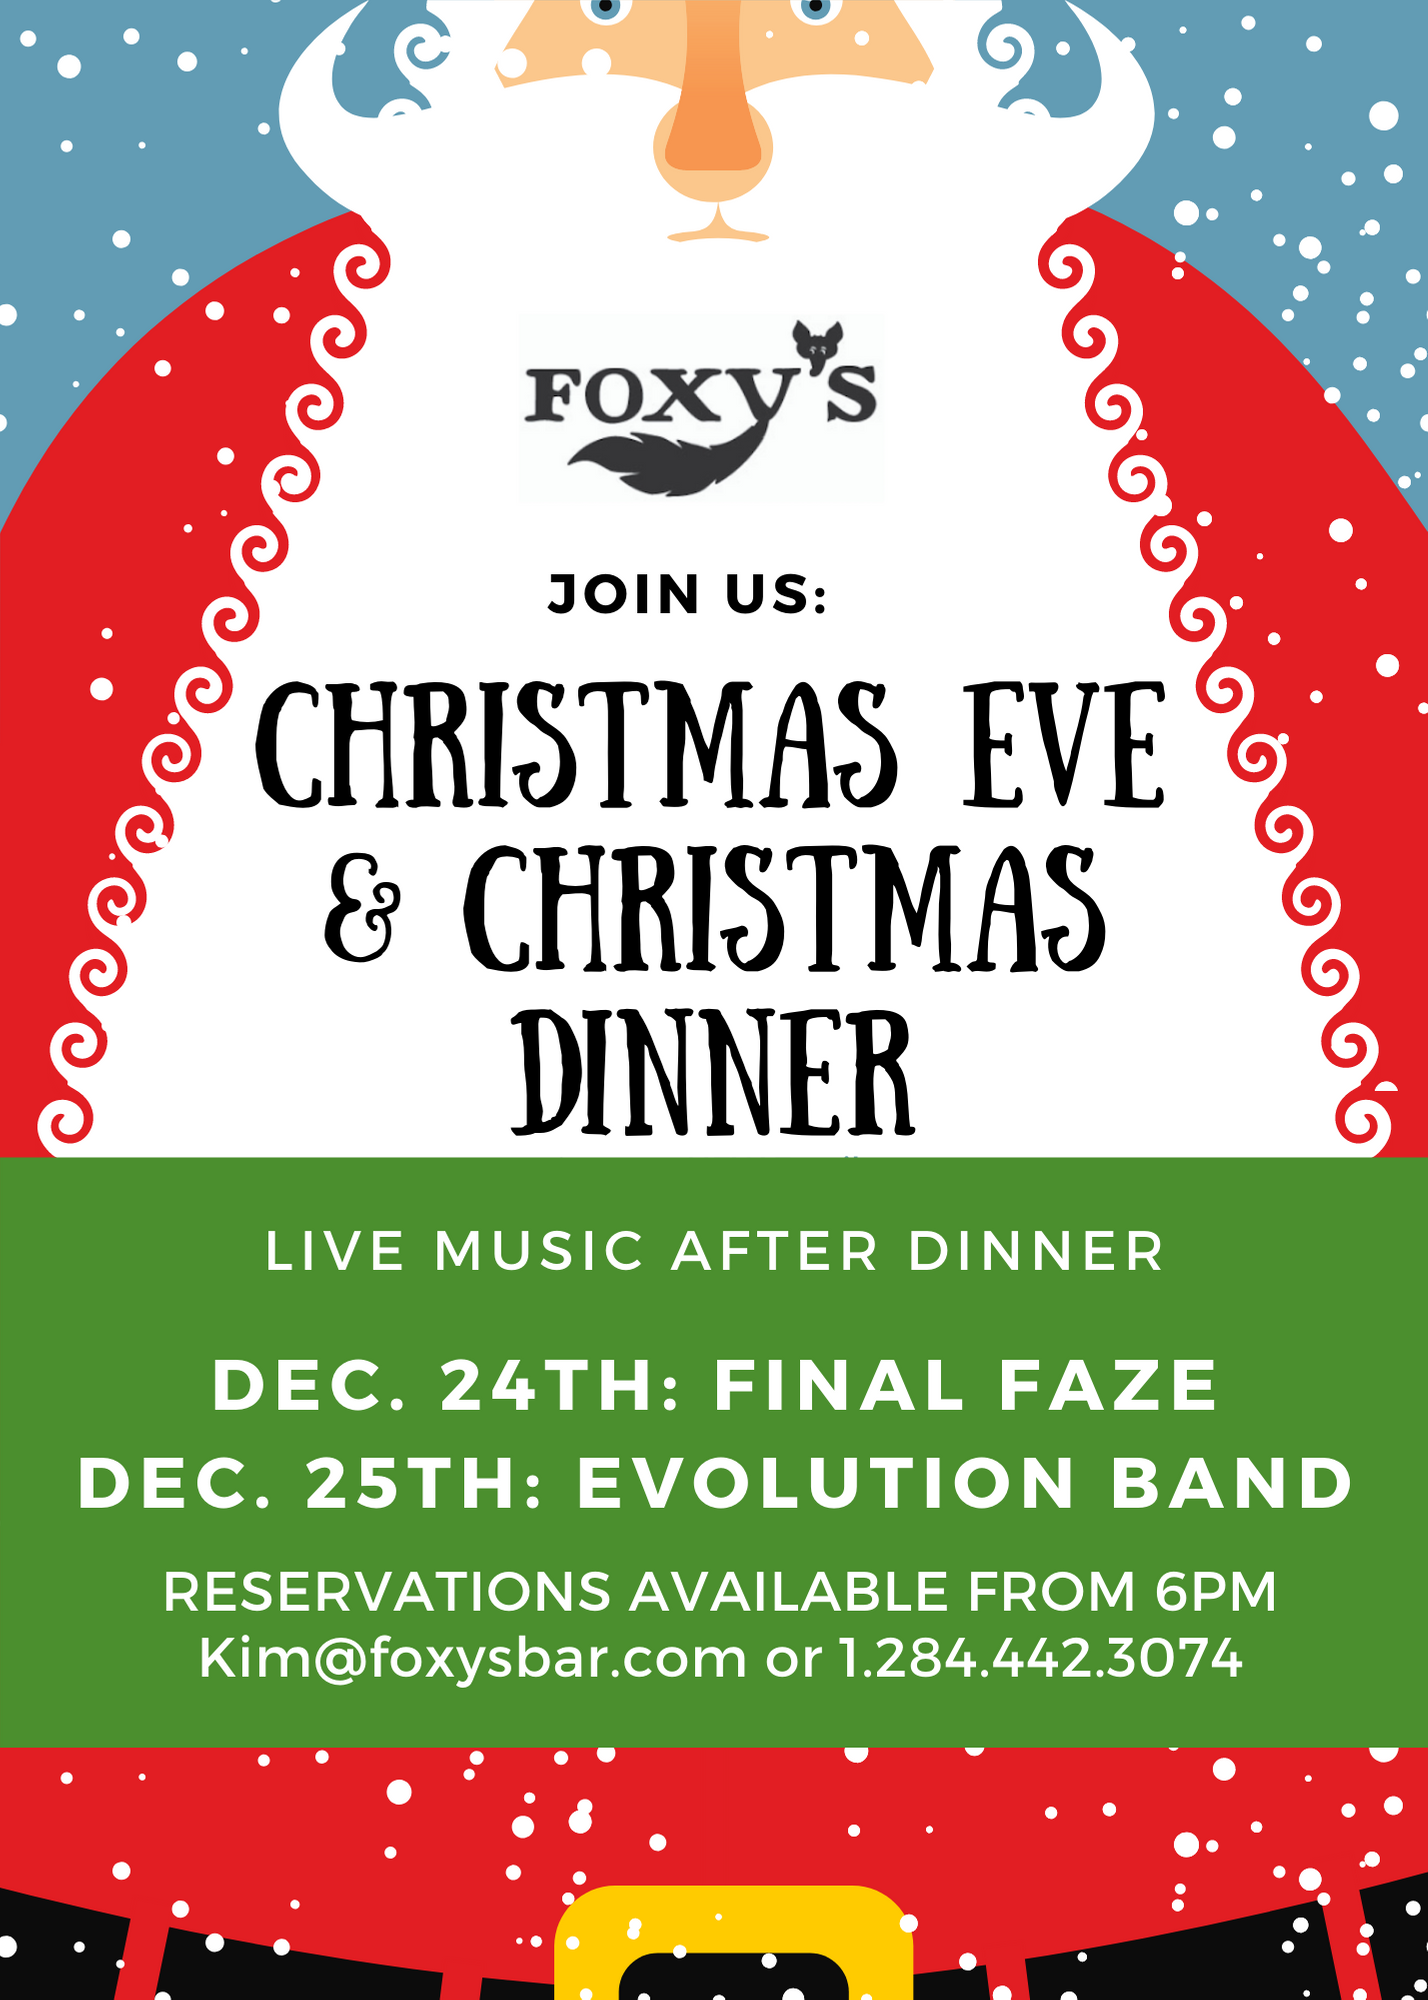 foxys christmas dinner